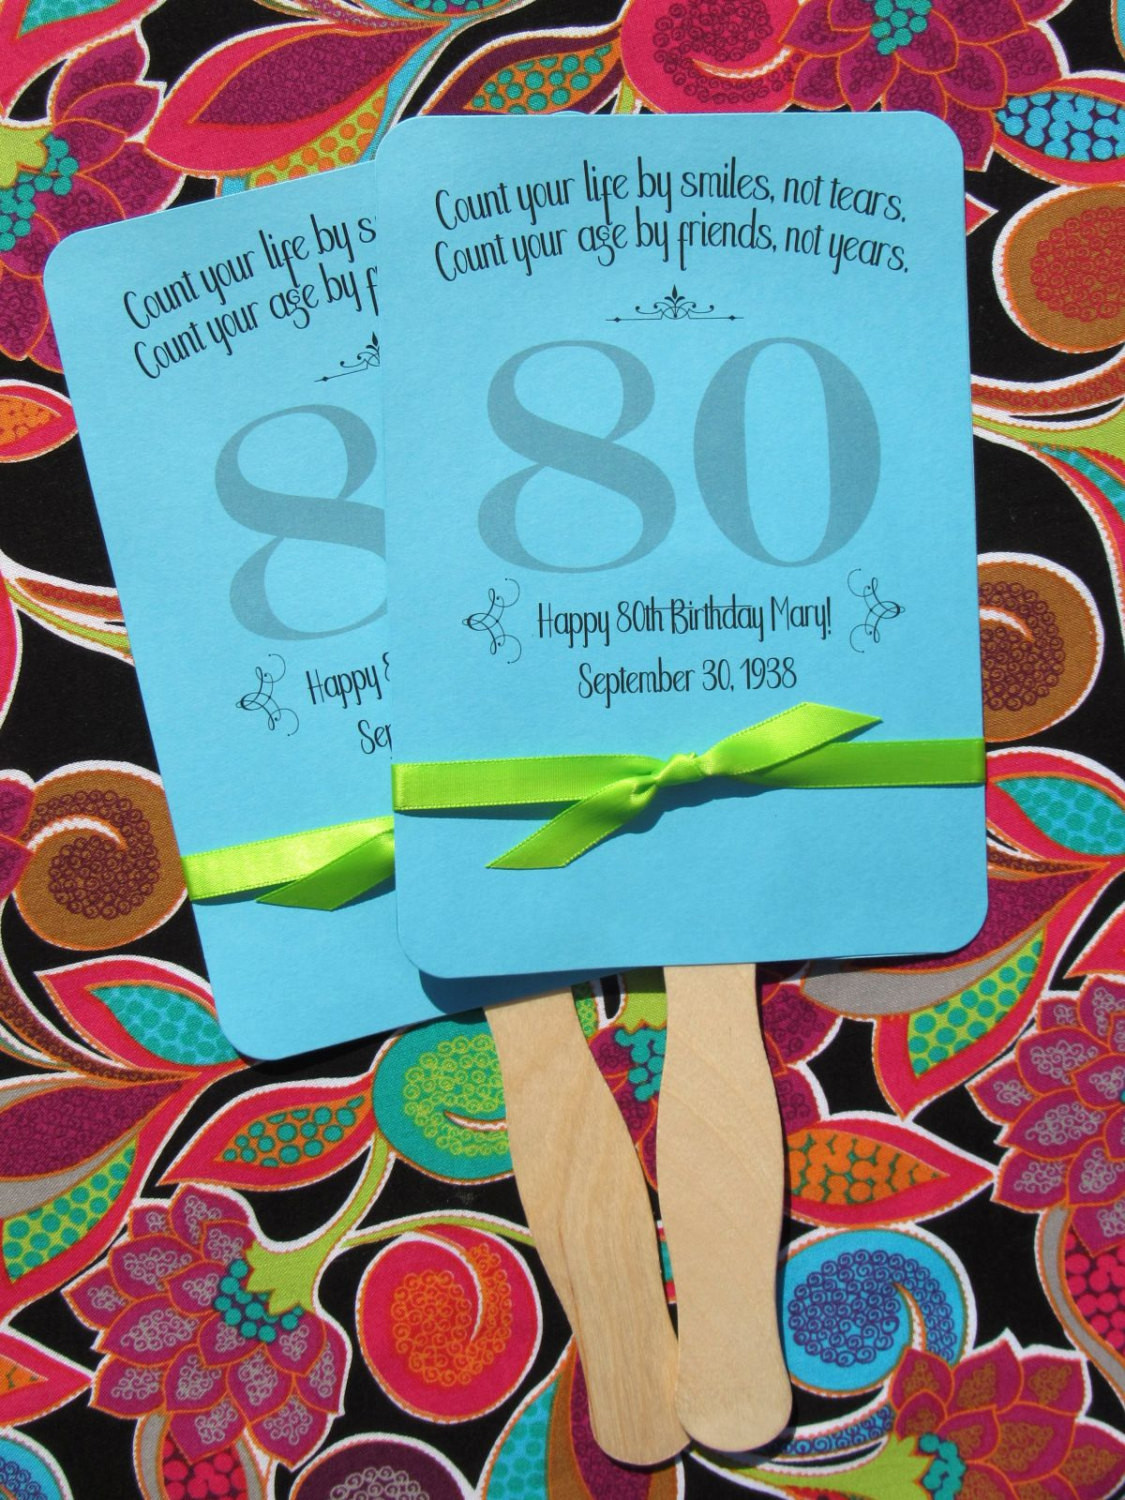 Best ideas about 80th Birthday Party Favors . Save or Pin Adult Birthday Favor 80th Birthday Personalized Fans Now.